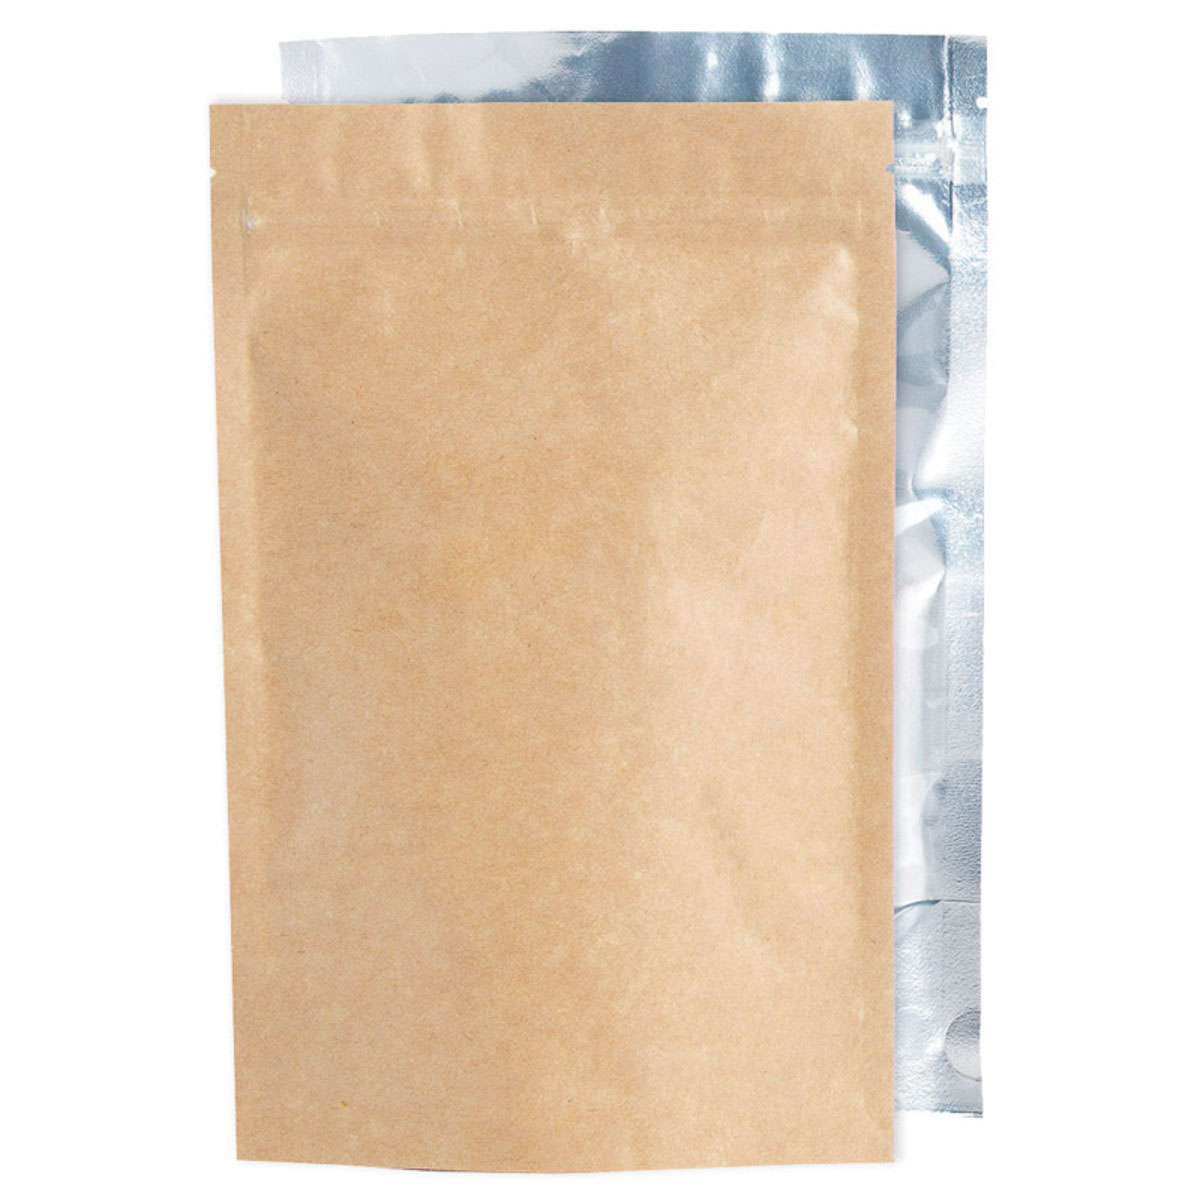 Ounce Kraft/Clear Barrier Bags (100 Qty.)